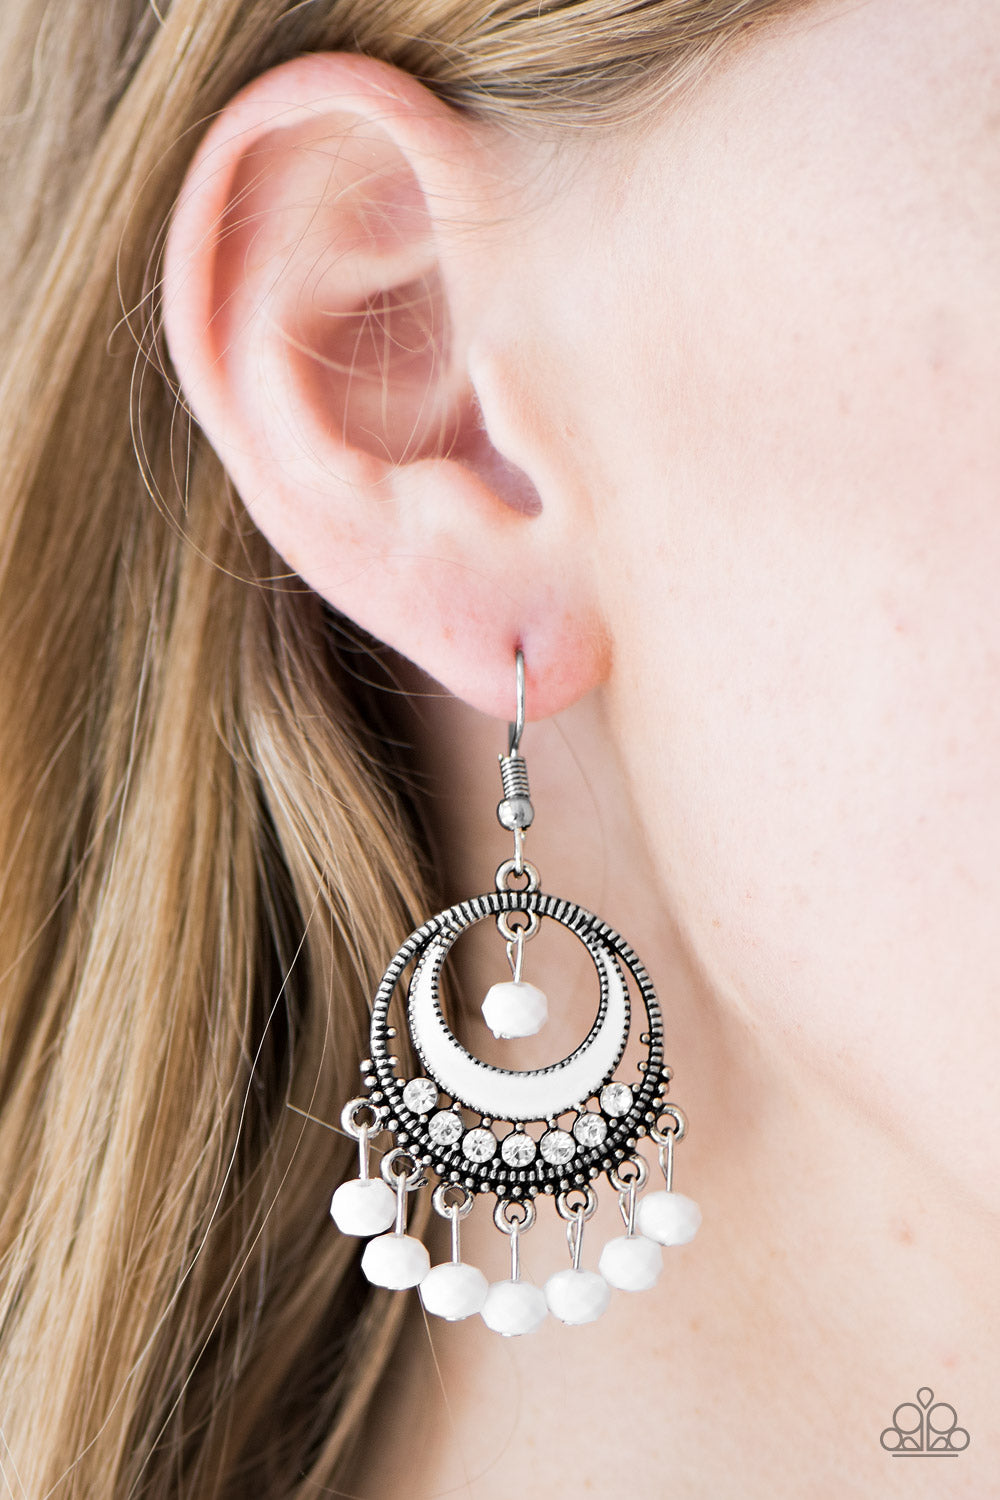 Meet Me At Midnight - White Earrings - Paparazzi Accessories